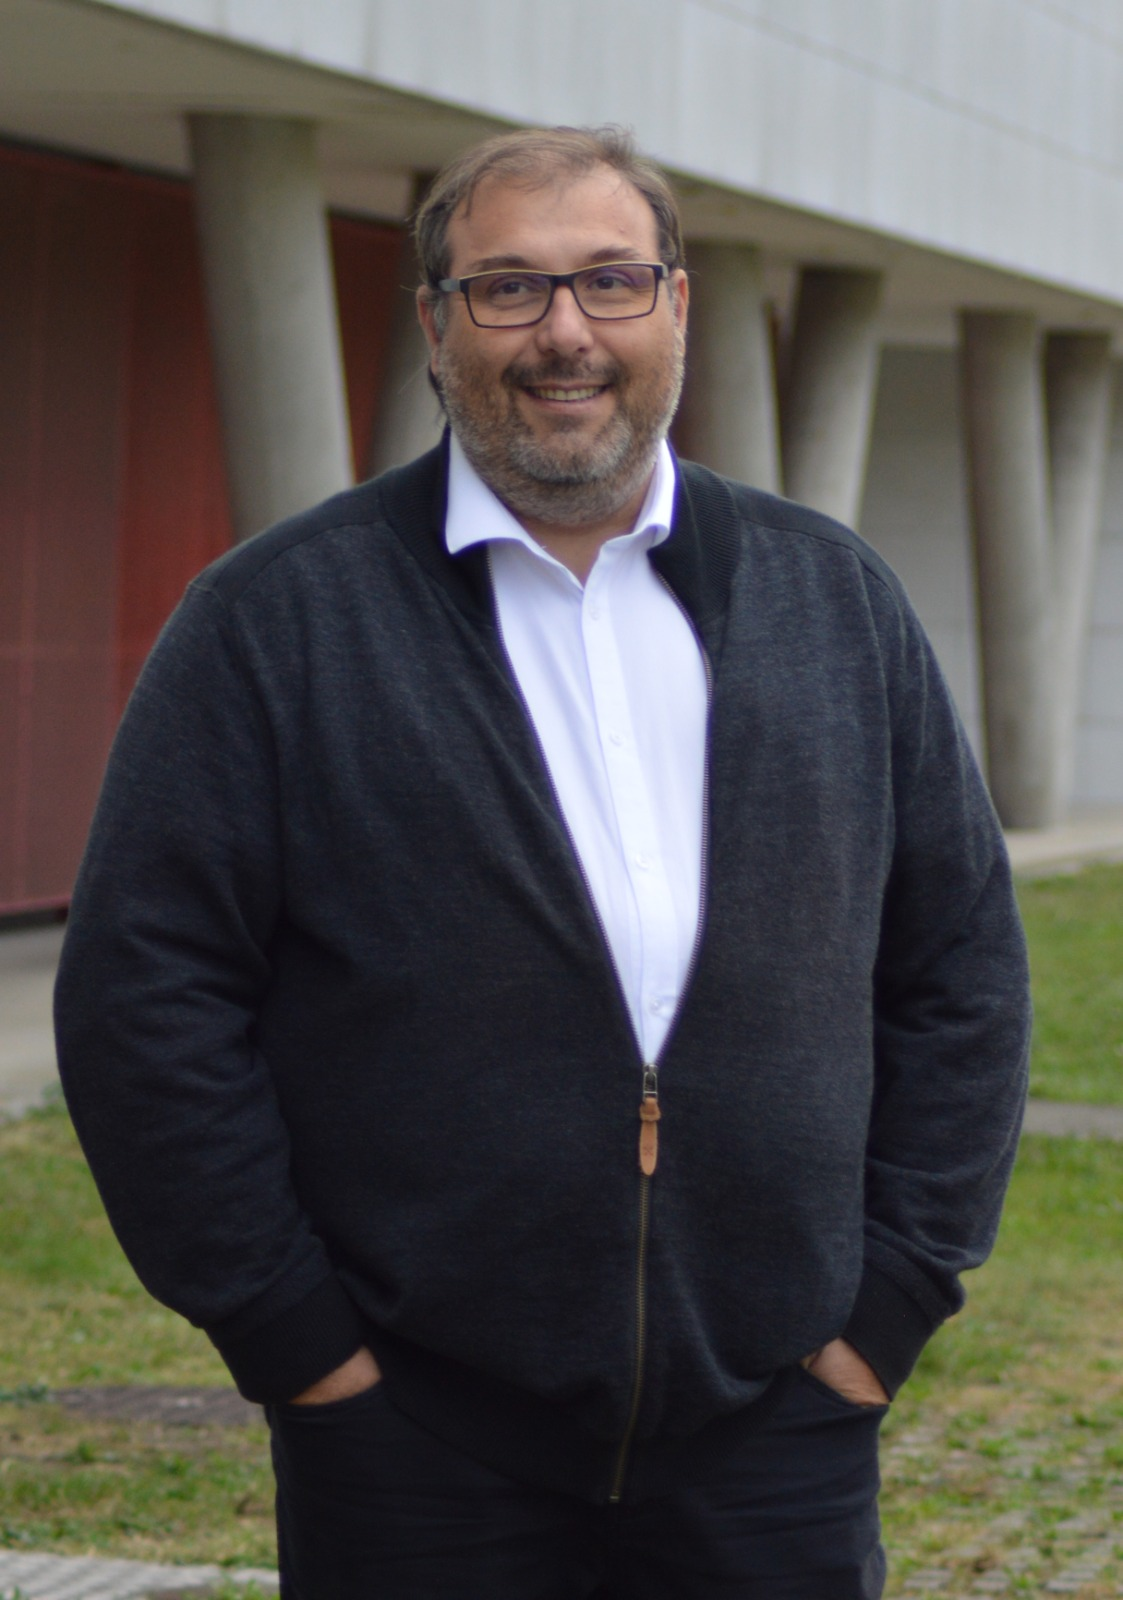 fabrice crasnier cybersecurity university professor in france forensic expert of the court of appeal of toulouse in france and former forensic police officer